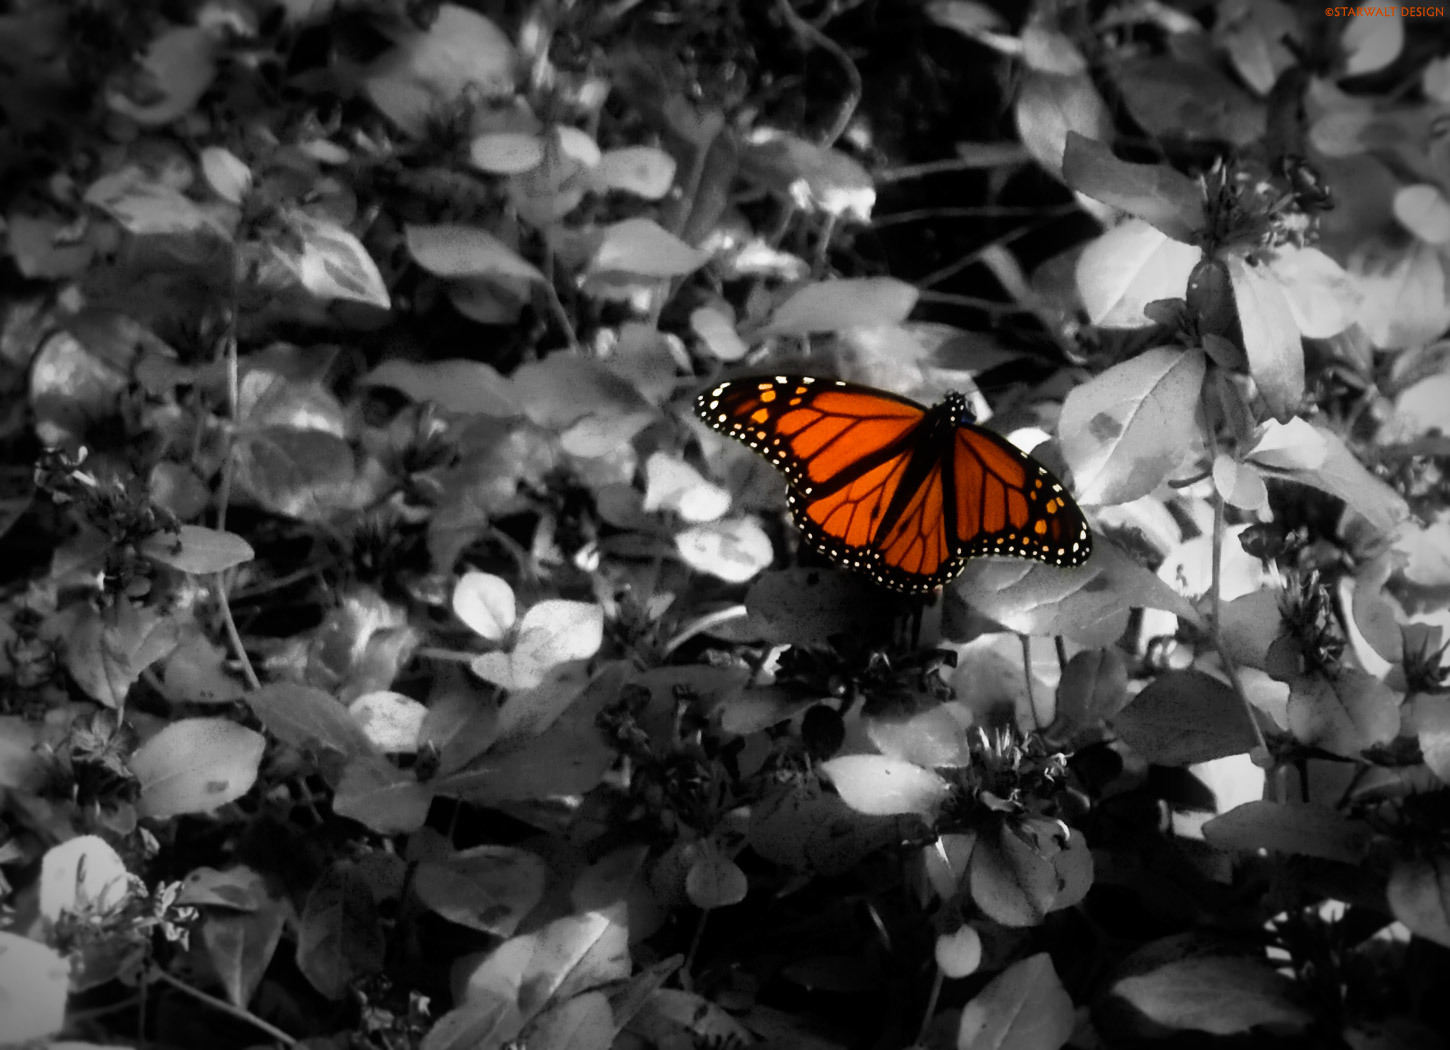 butterfly insects Creative artwork HD Wallpaper